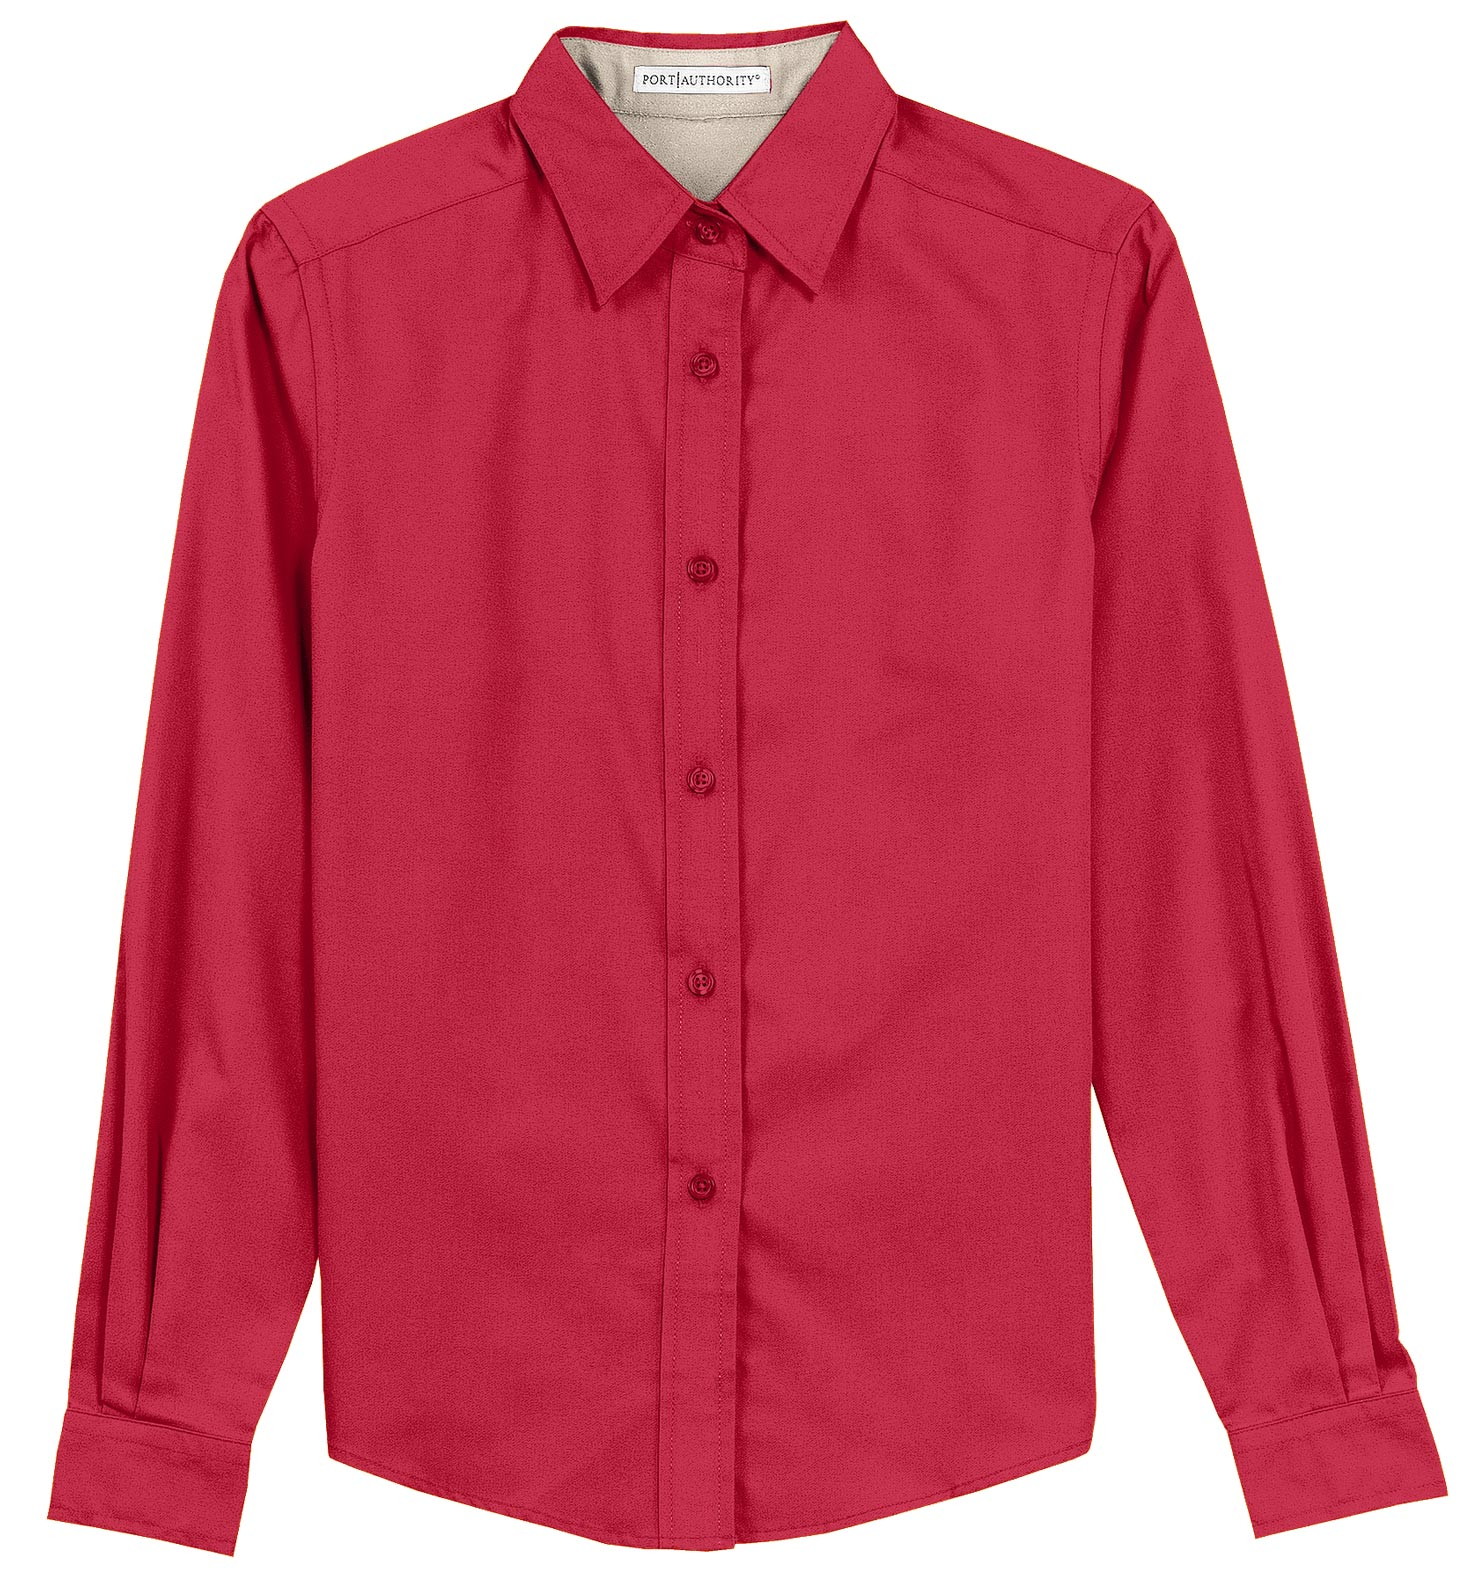 Ladies Long Sleeve Easy Care Shirt (S - 6XL)